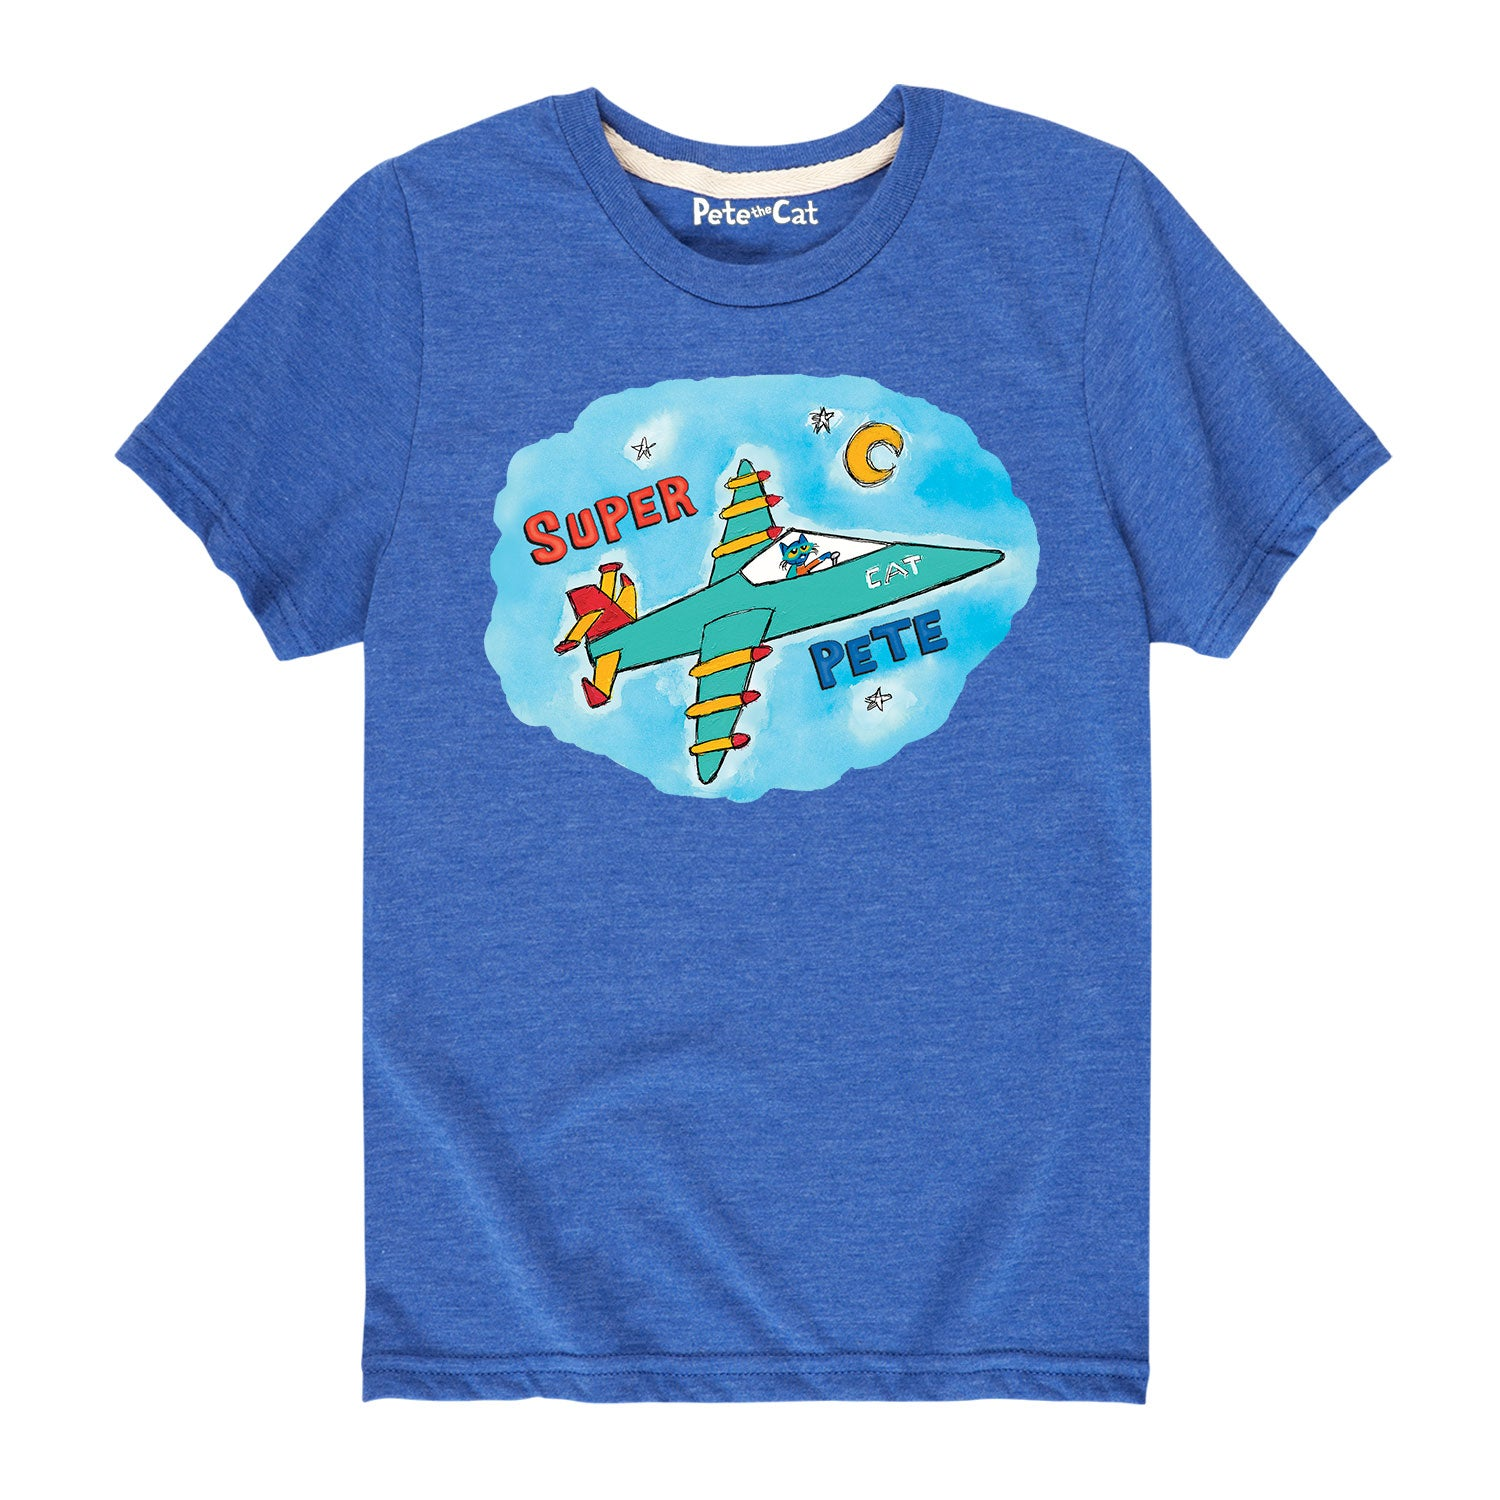 Super Pete In Jet - Youth & Toddler Short Sleeve T-Shirt